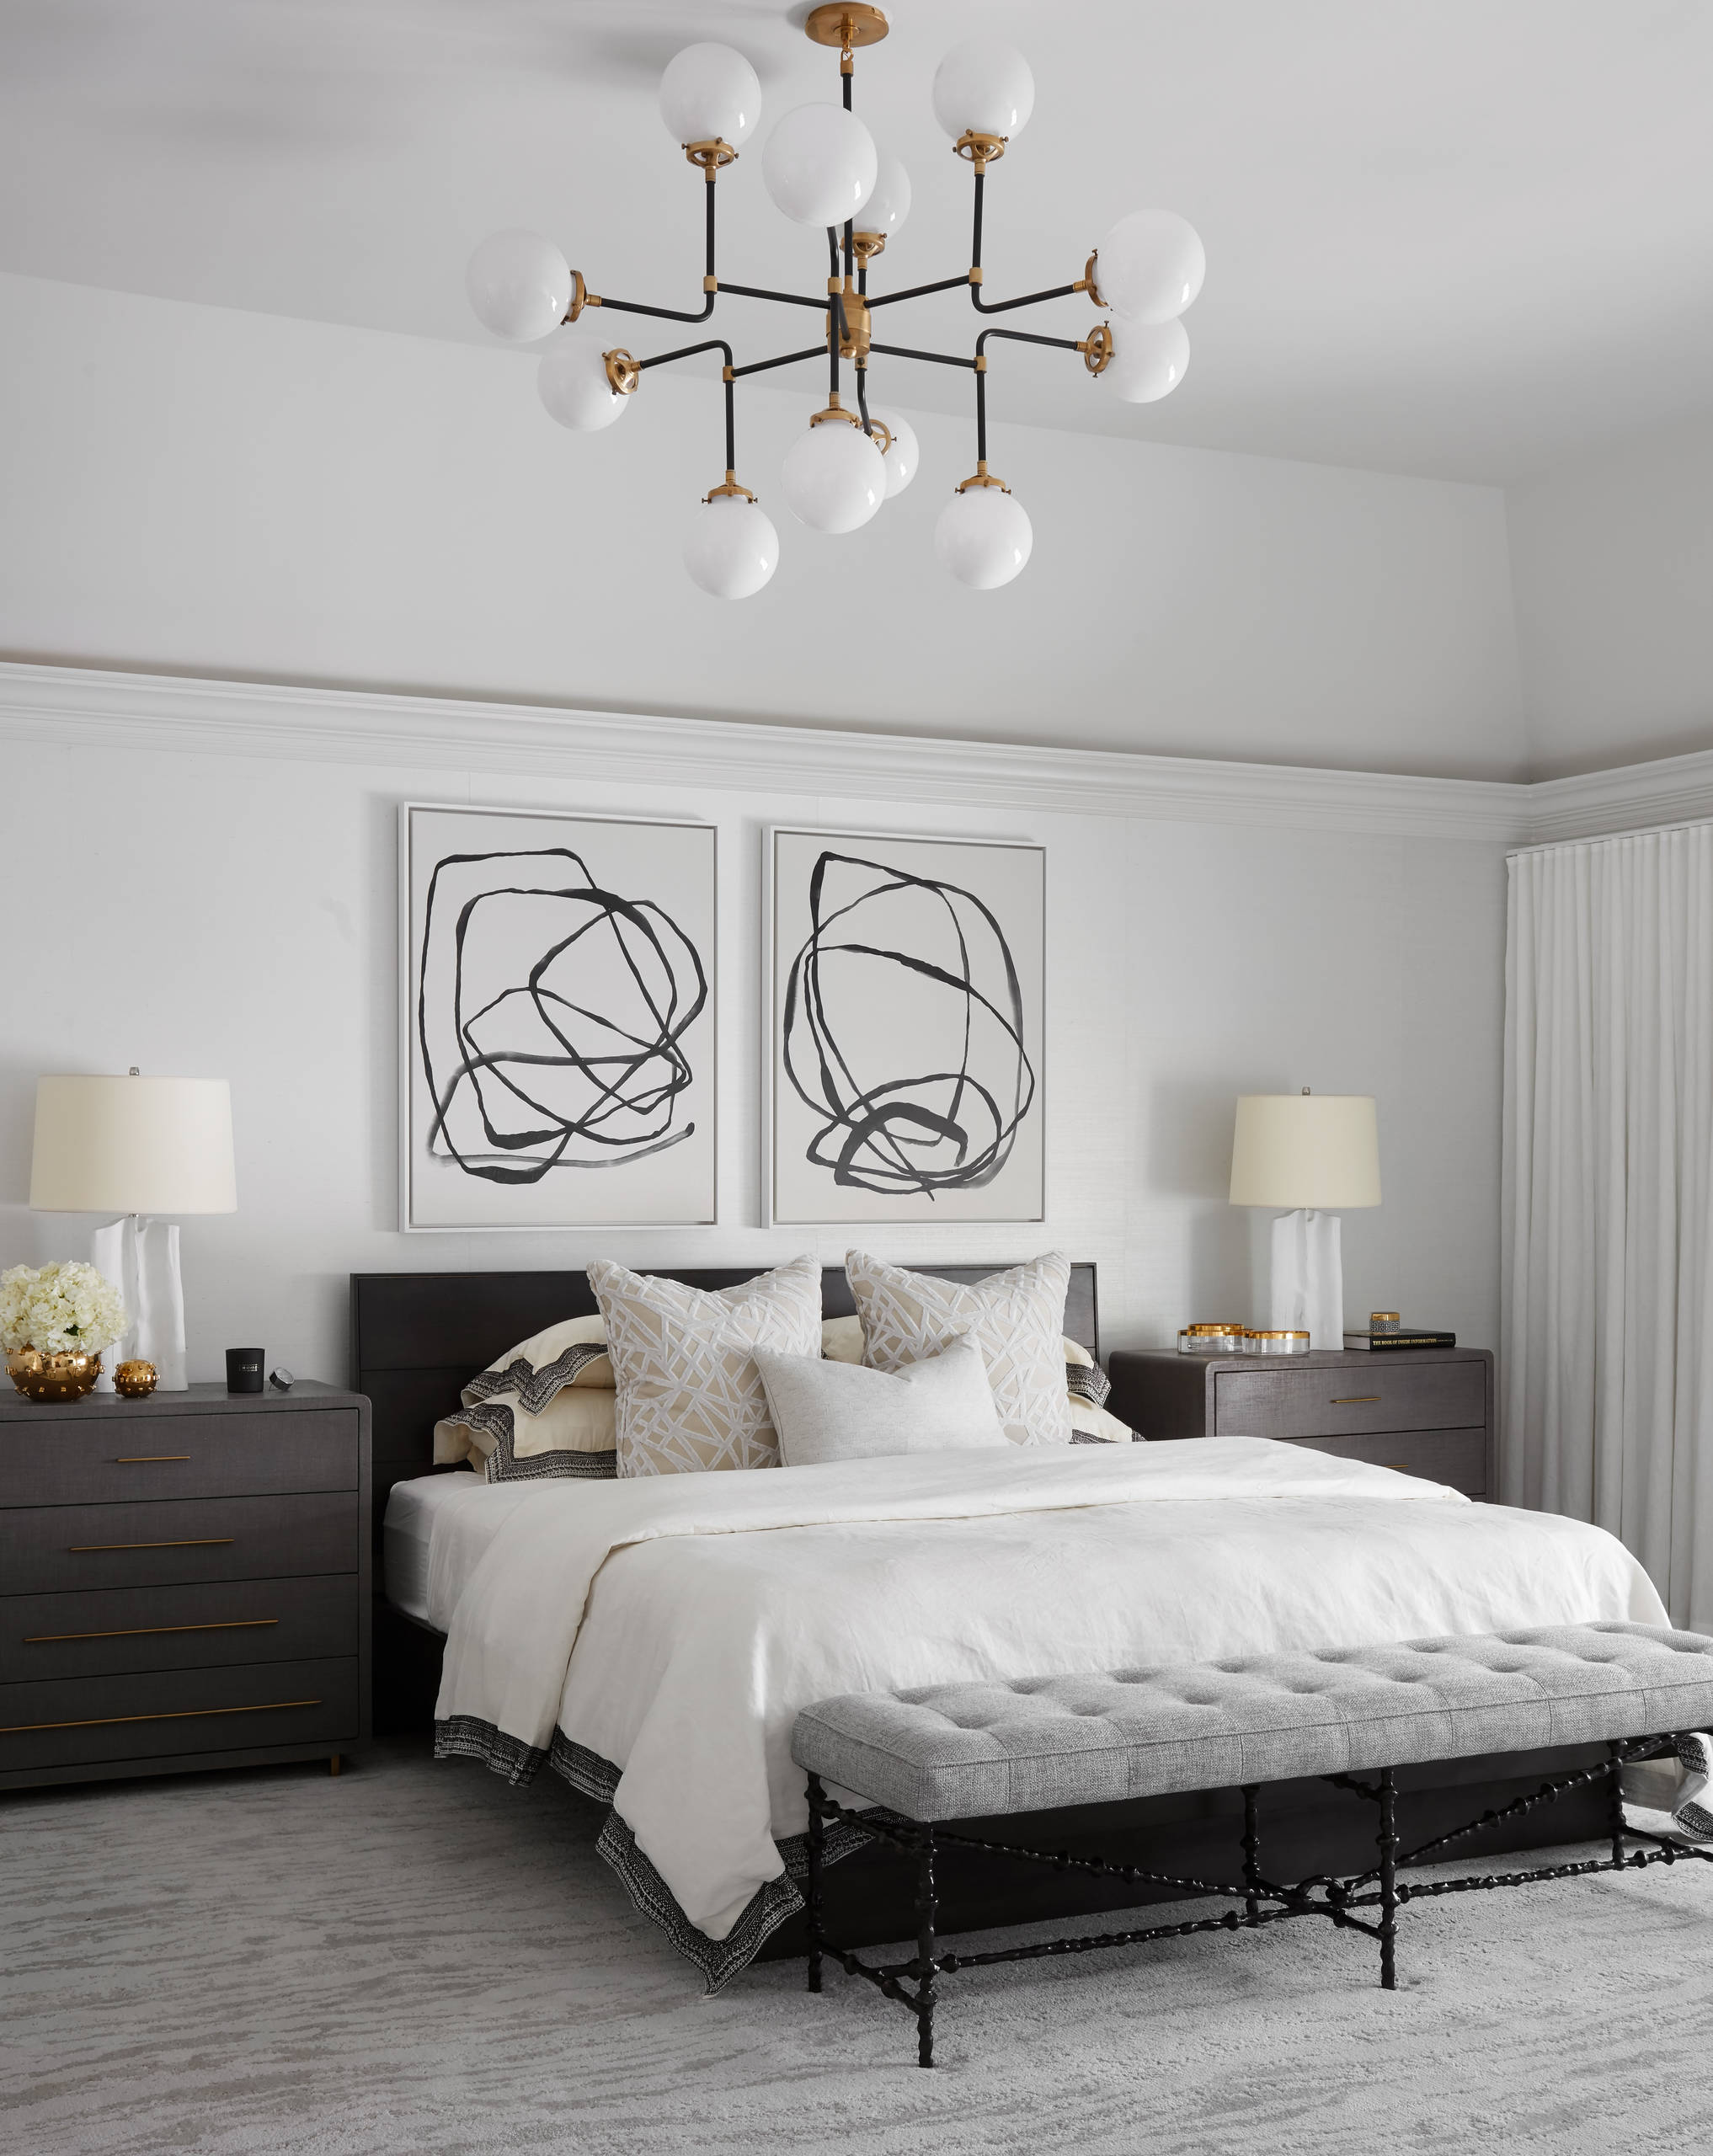 9 Beautiful Contemporary Bedroom Pictures & Ideas - January, 9